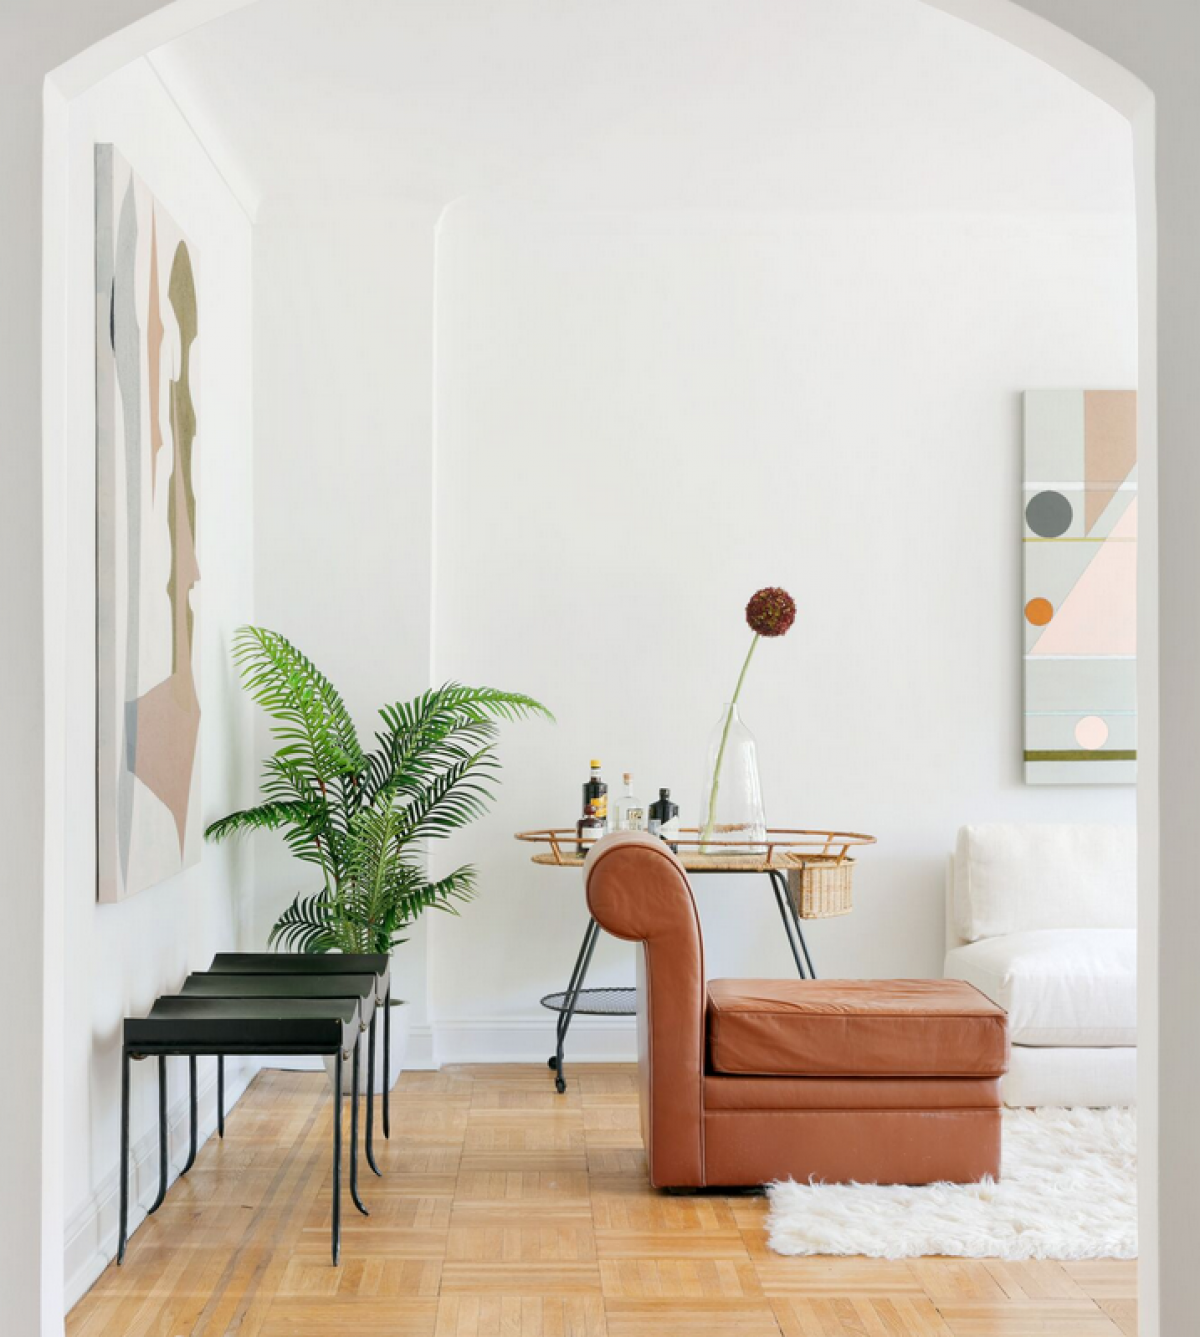 How to create cozy and spacious home, ready for selling